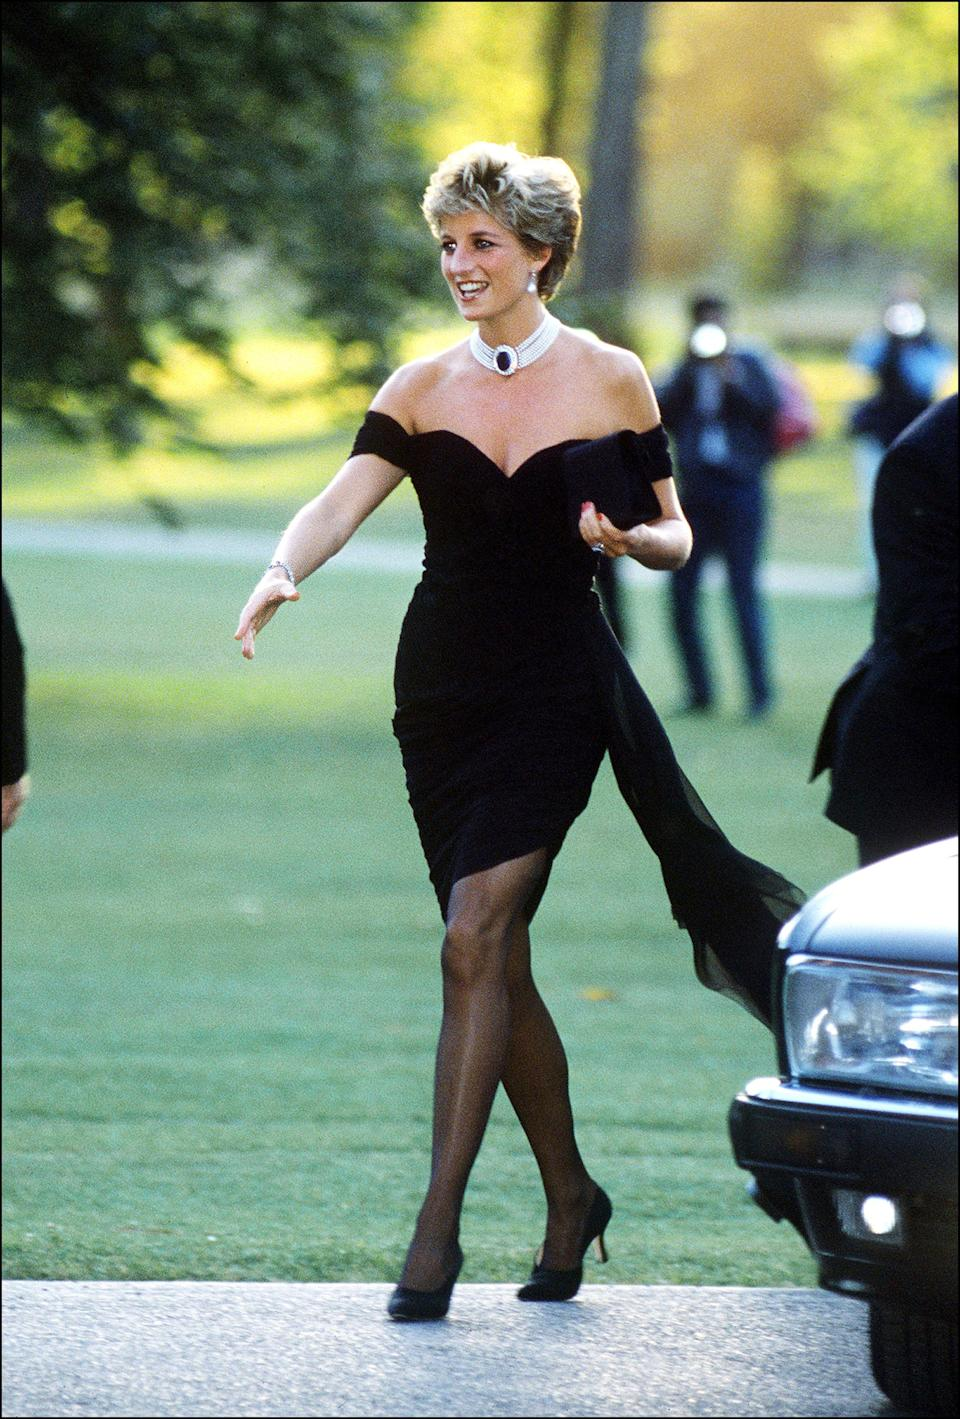 """<p>Today marks 24 years since the passing of Princess Diana. Known as the people's princess, thanks to her kind nature and passion for helping others, Diana's legacy continues not only as a royal and philanthropist, but as arguably one of the greatest style icons of the 20th century. </p><p>Over the years, Princess Diana wore some memorable ensembles - many of which are now actually deserving of that often-overused title, 'iconic' - from her wedding dress with <a href=""""https://www.harpersbazaar.com/uk/fashion/fashion-news/a36261396/princess-diana-wedding-dress-kensington-palace/"""" rel=""""nofollow noopener"""" target=""""_blank"""" data-ylk=""""slk:a 25-foot long train worn to marry Prince Charles"""" class=""""link rapid-noclick-resp"""">a 25-foot long train worn to marry Prince Charles</a>; to her famous 'revenge dress' designed by Christina Stambolian and worn shortly after Charles confirmed his affair; her off-duty cycling short looks that are still <a href=""""https://www.harpersbazaar.com/uk/fashion/what-to-wear/g34394845/princess-diana-style/"""" rel=""""nofollow noopener"""" target=""""_blank"""" data-ylk=""""slk:emulated today;"""" class=""""link rapid-noclick-resp"""">emulated today; </a>and to her love for statement collars (whether a pie-crust or a Peter Pan, her aesthetic is still seen on modern catwalks). It's no understatement that her sense of style <a href=""""https://www.harpersbazaar.com/uk/celebrities/news/a34709535/princess-diana-wedding-dress-explained-the-crown/"""" rel=""""nofollow noopener"""" target=""""_blank"""" data-ylk=""""slk:defined a generation"""" class=""""link rapid-noclick-resp"""">defined a generation</a>. </p><p>The late royal was unarguably ahead of her time, from <a href=""""https://www.harpersbazaar.com/uk/culture/entertainment/a35115516/the-crown-princess-diana-motherhood/"""" rel=""""nofollow noopener"""" target=""""_blank"""" data-ylk=""""slk:redefining motherhood"""" class=""""link rapid-noclick-resp"""">redefining motherhood</a> to <a href=""""https://www.harpersbazaar.com/uk/fashion/style-files/g31891377/princess-diana-recycled-outfit"""